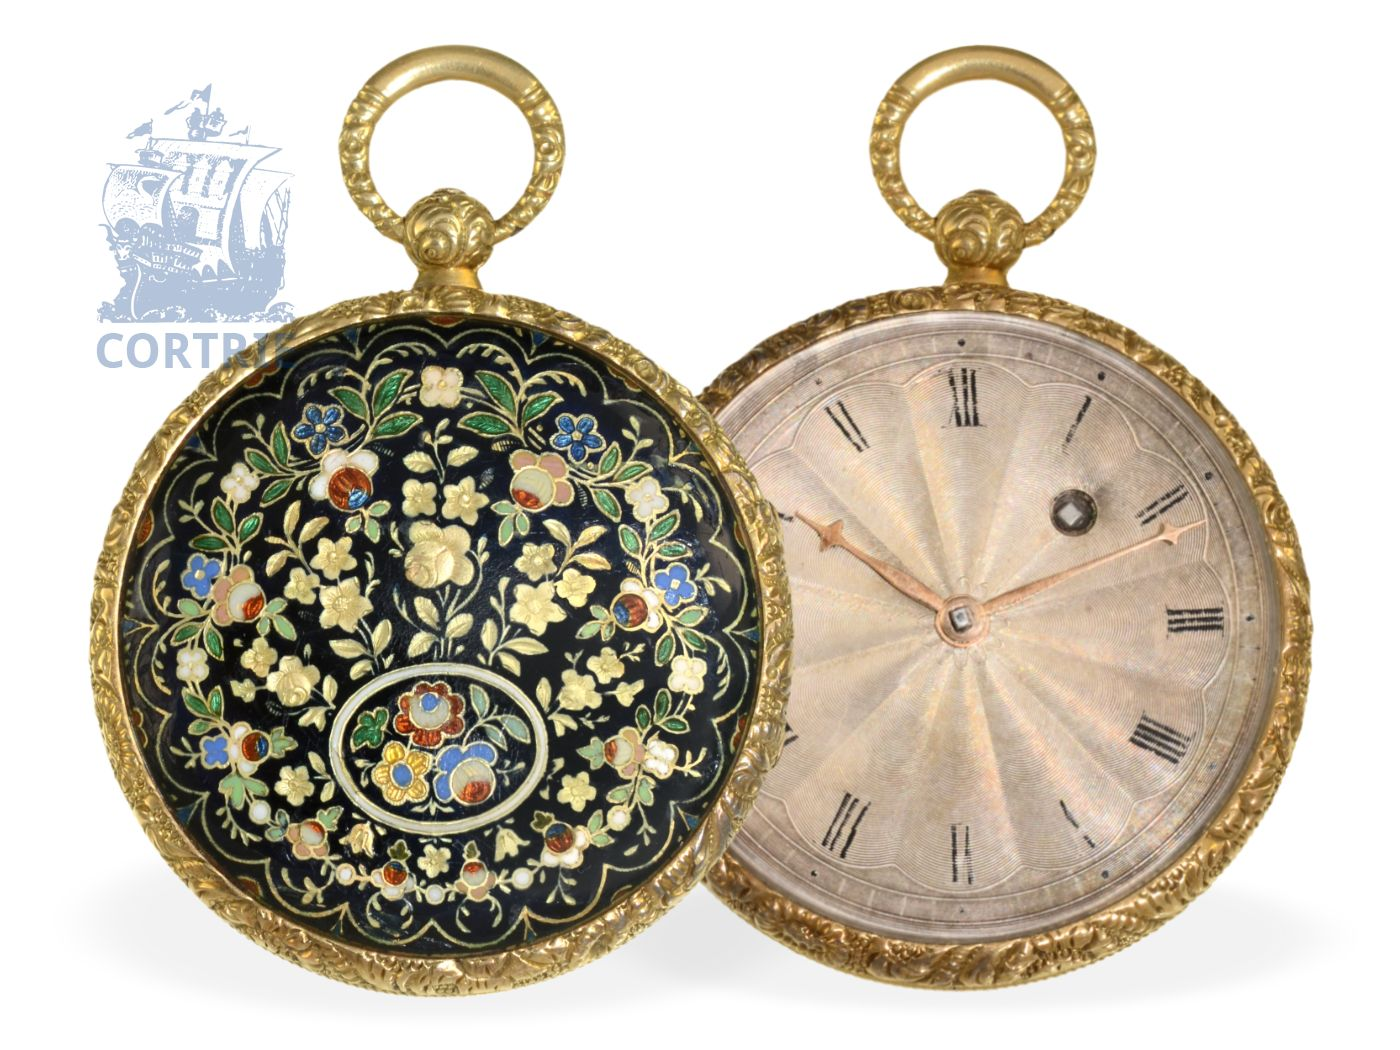 Pocket watch: fine and flat gold/enamel verge watch ALLIEZ, BACHELARD & TEROND FILS, GENEVA ca. 1830-